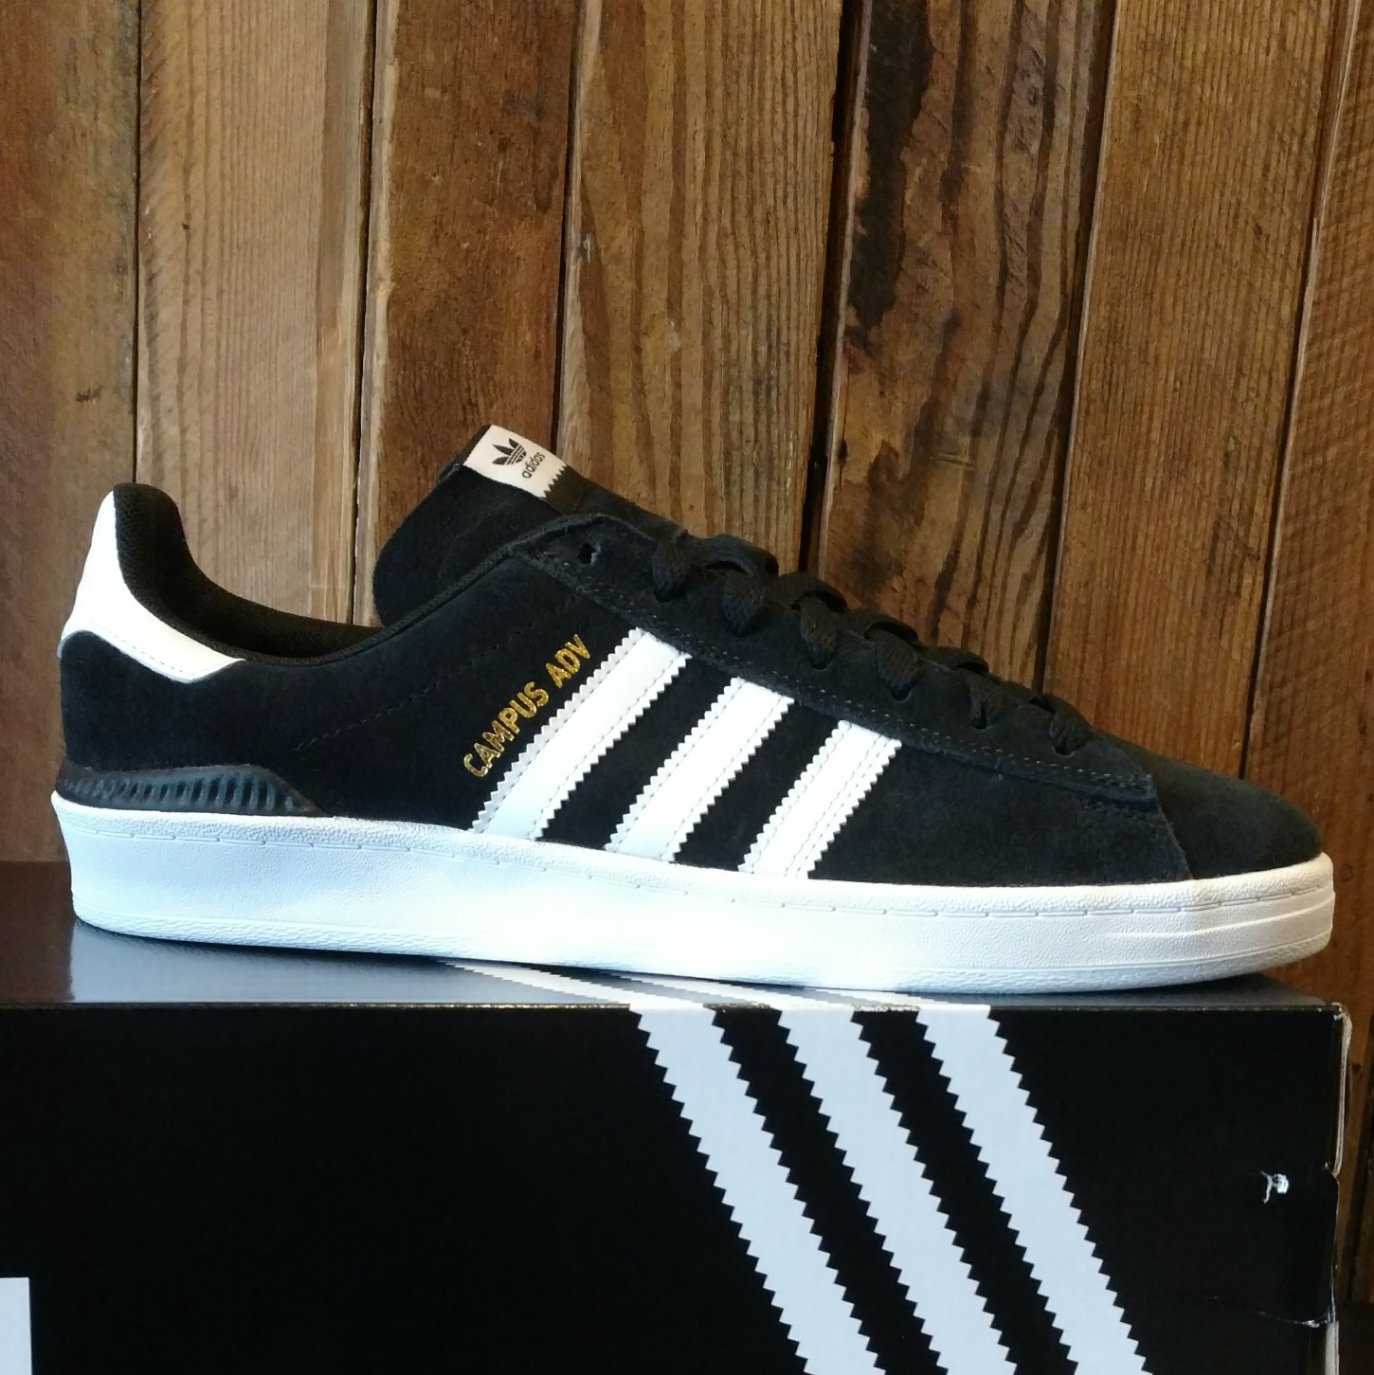 1a431d86e3be36 Adidas Brought Back Their Classic Campus Vulc Avialble In Black White Suede.